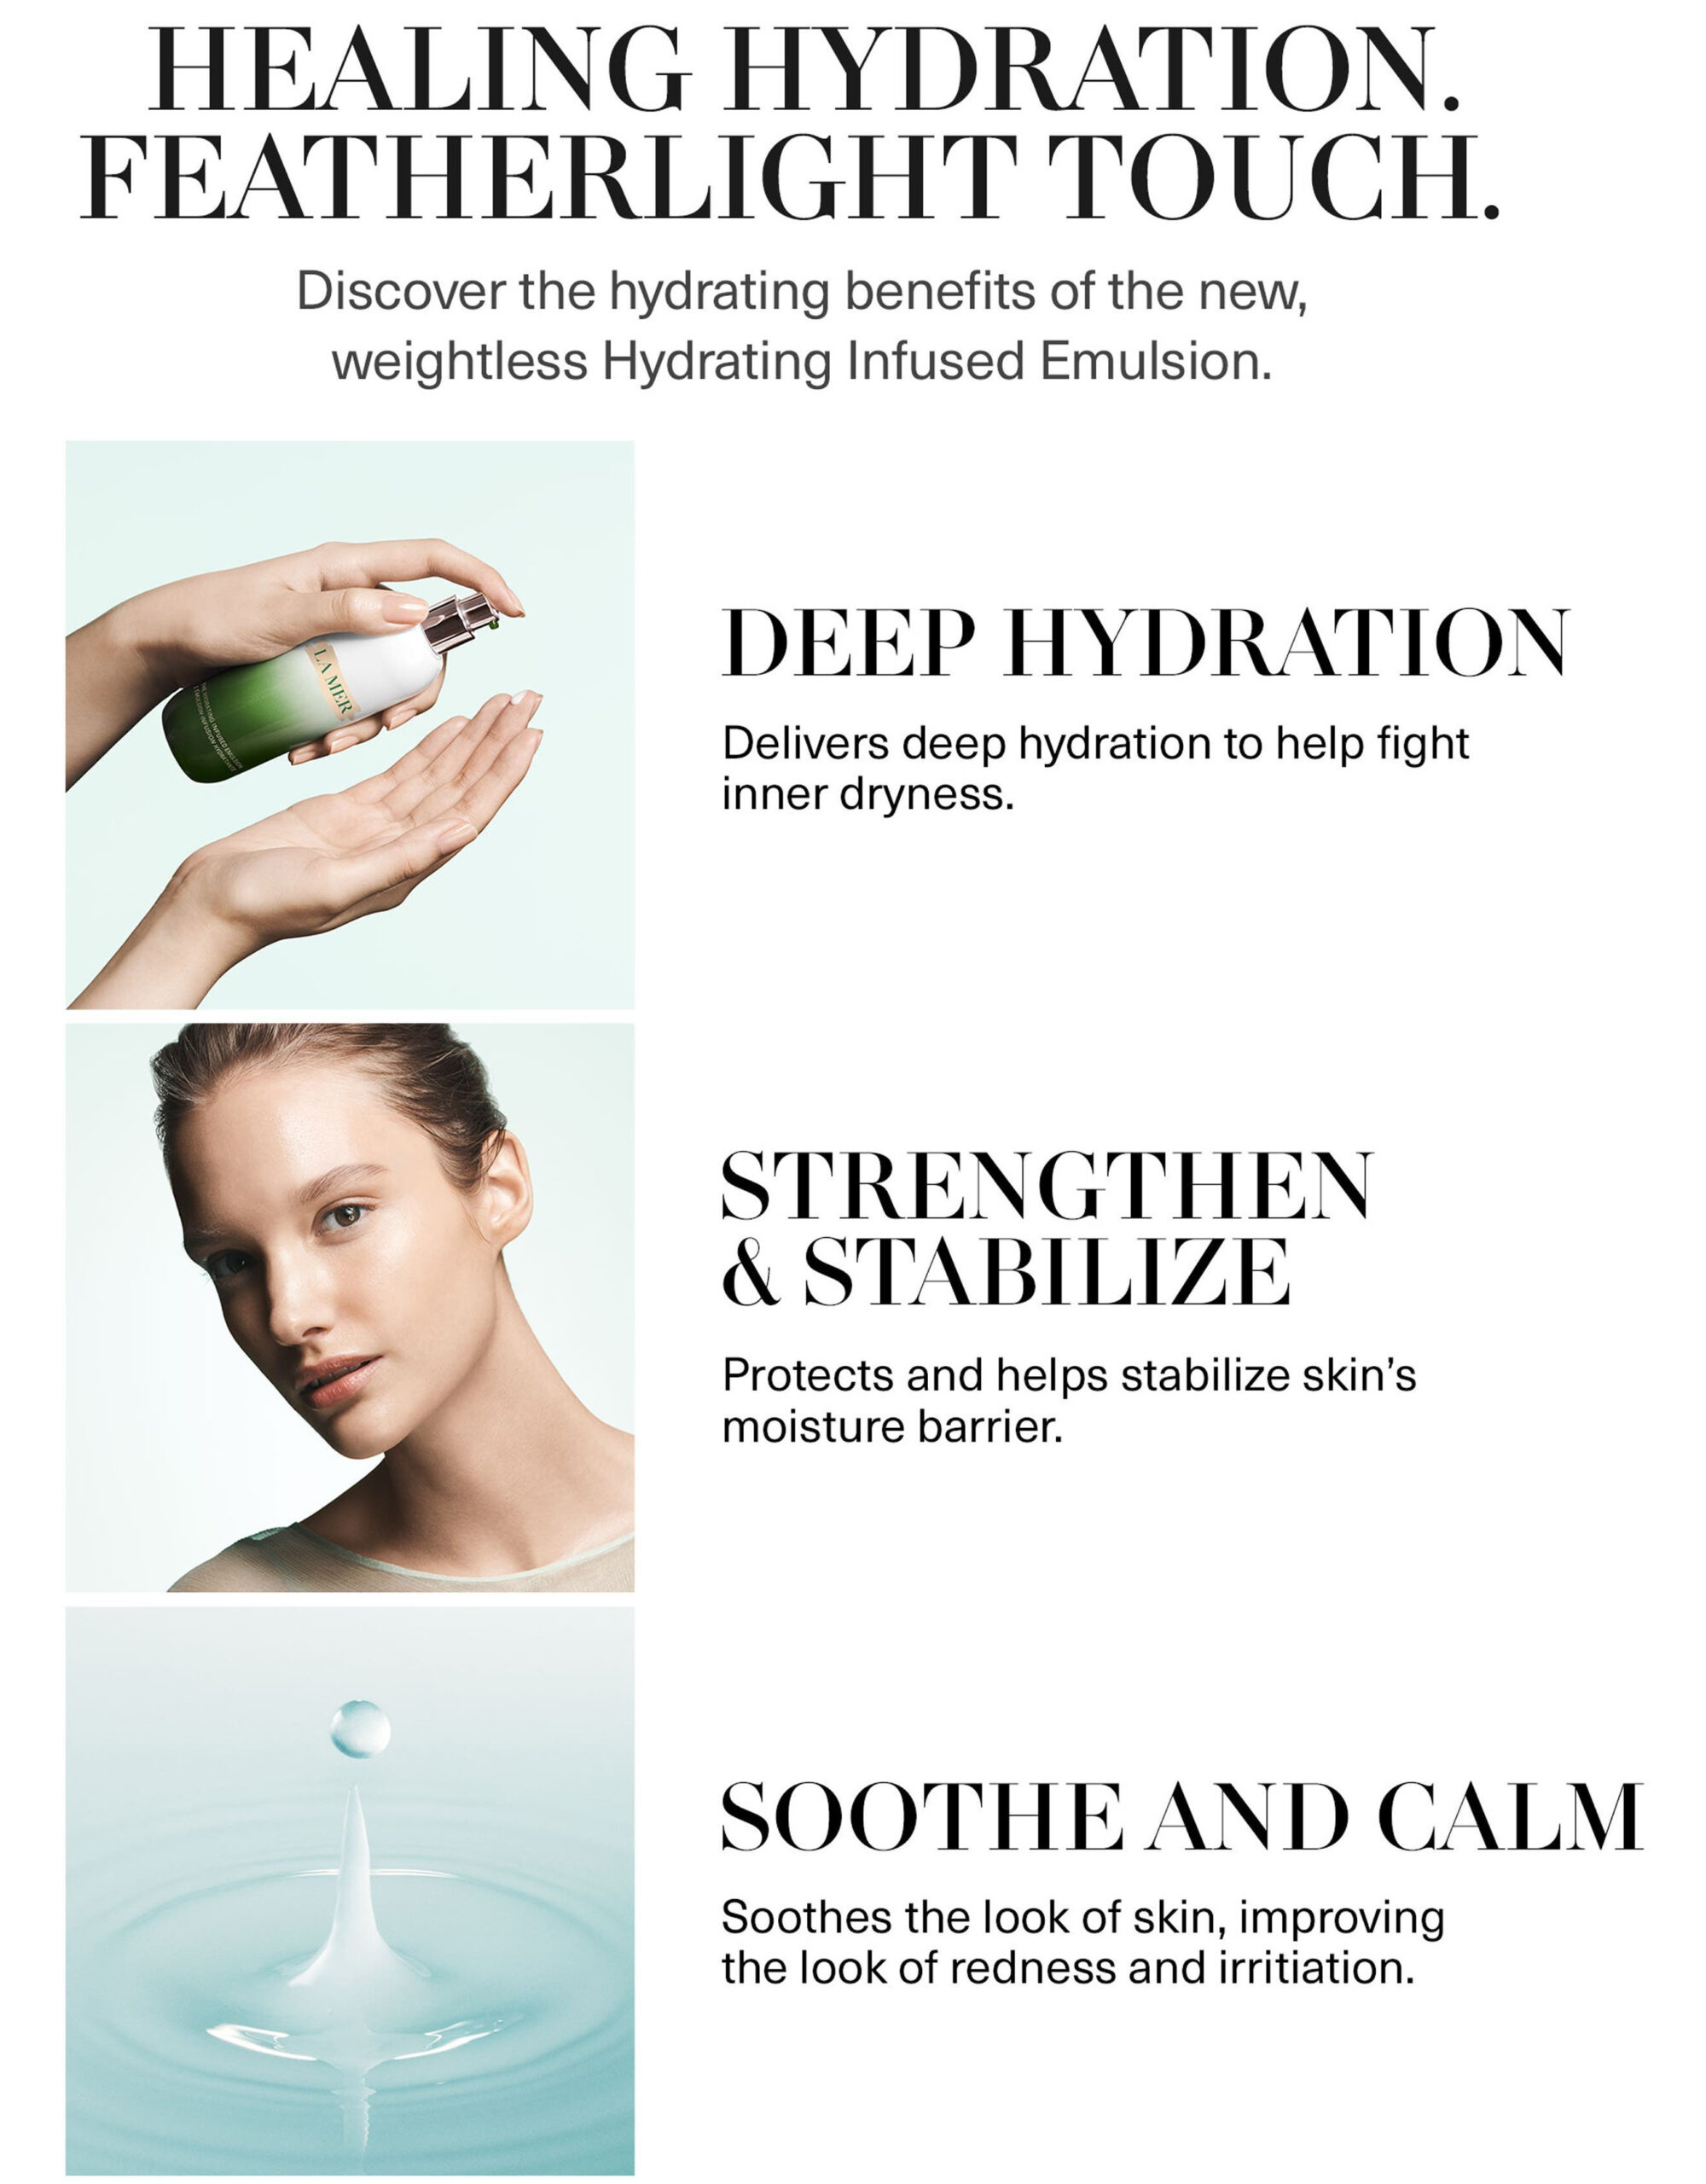 La Mer The Hydrating Infused Emulsion